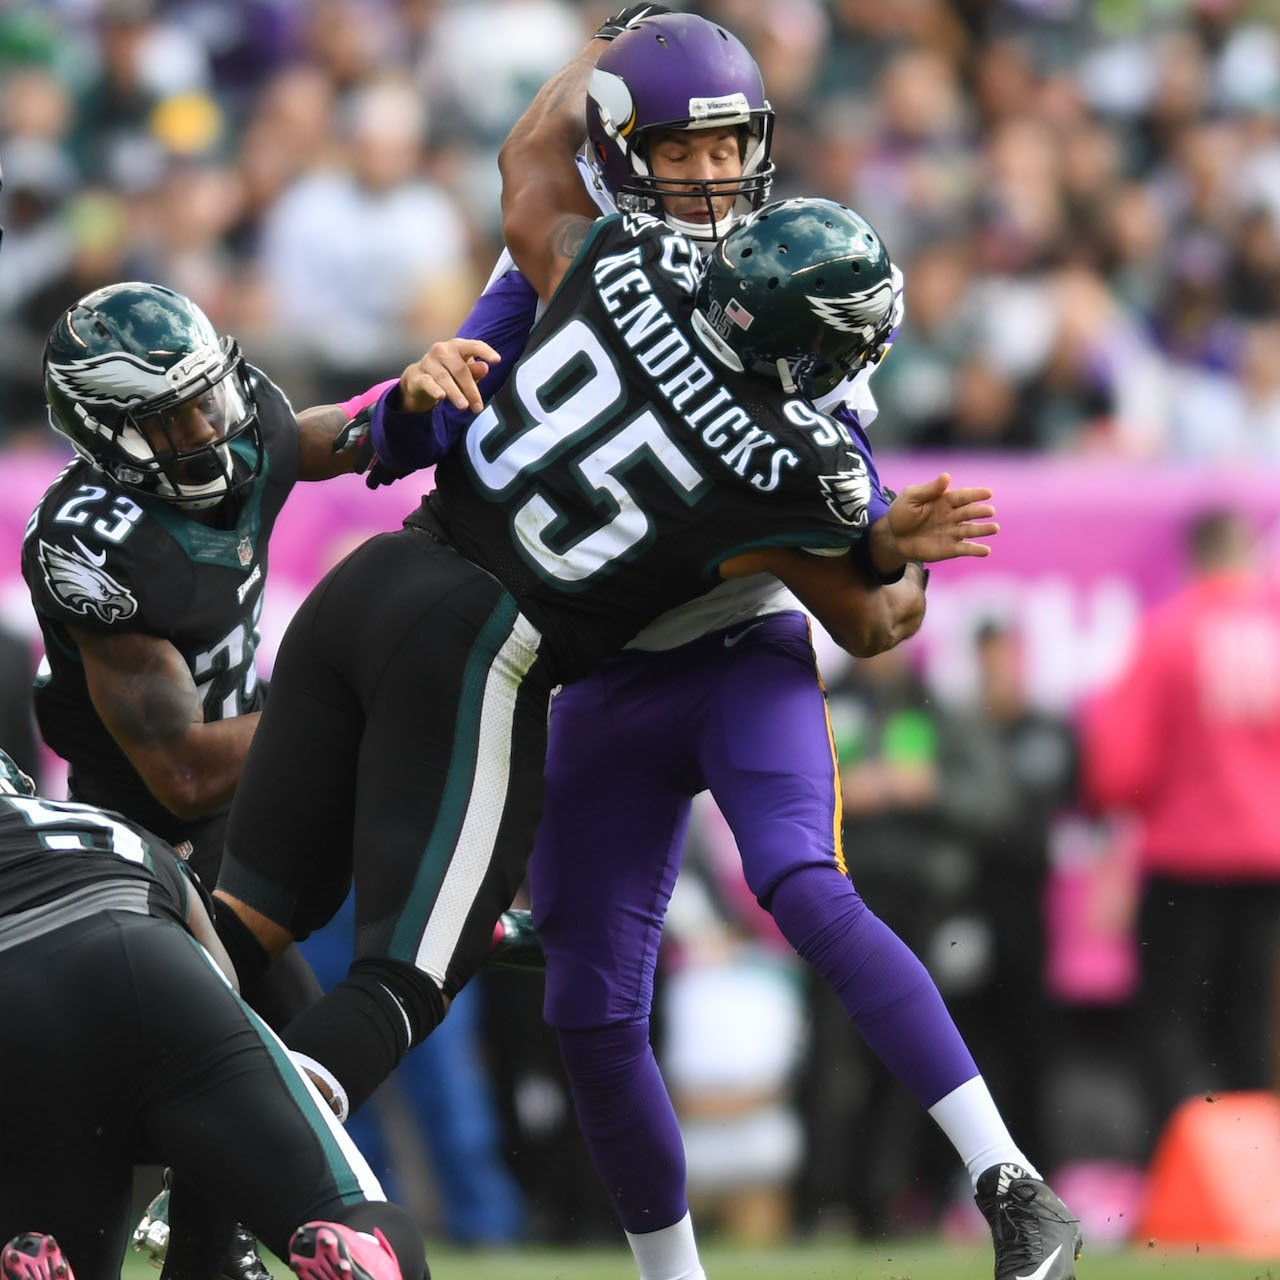 The-eagles-made-a-snuff-film-of-the-vikings-offensive-line-1477404302.jpg?crop=1xw:0